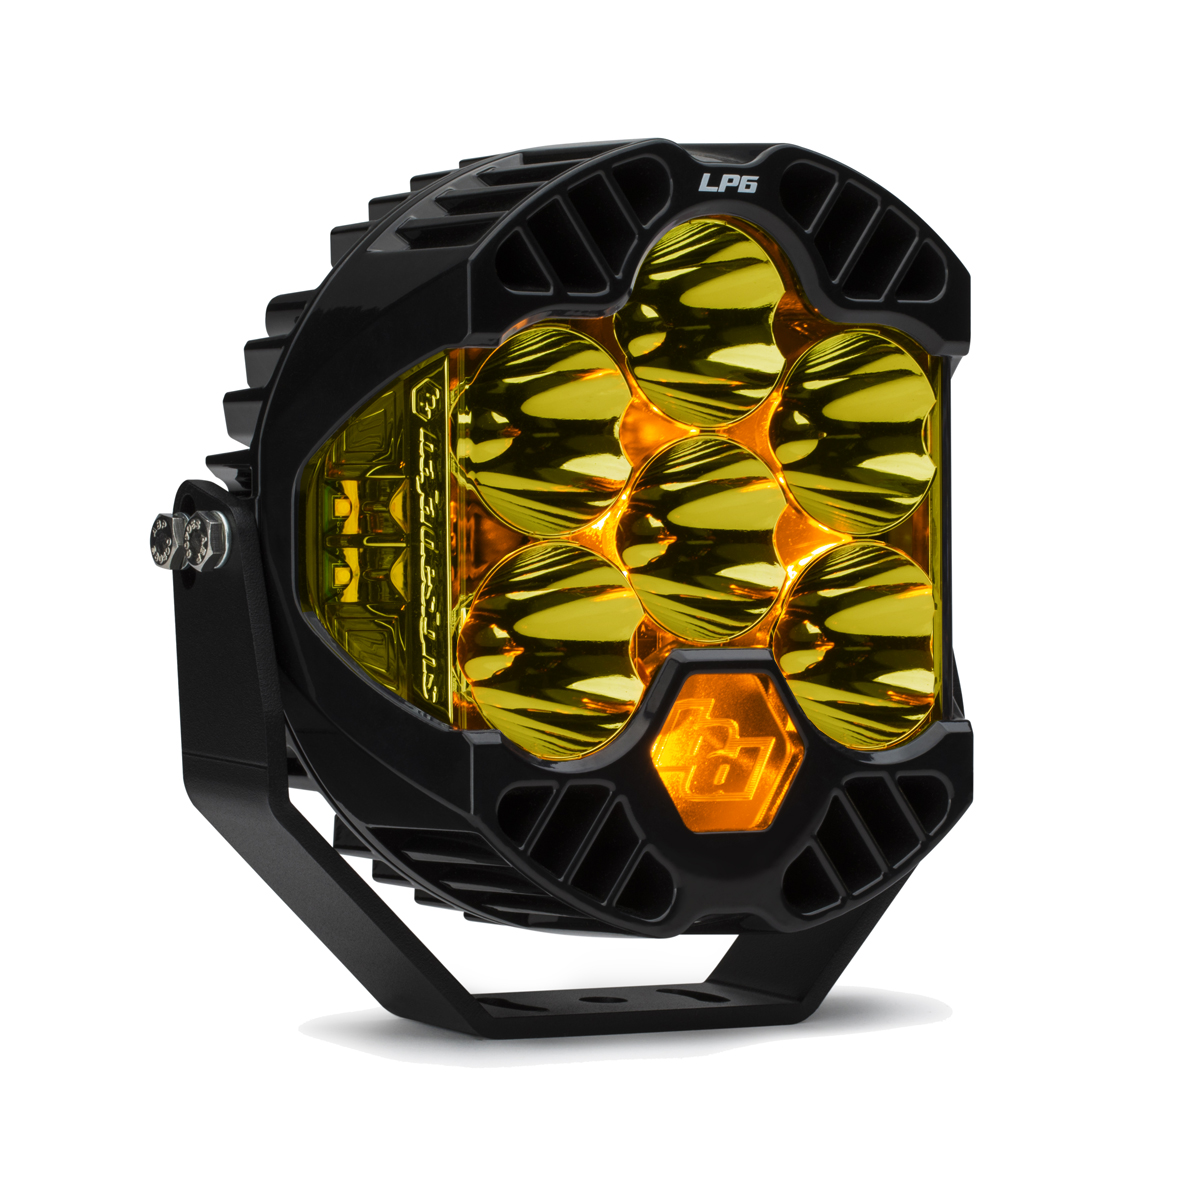 Baja Designs LP6 Pro LED Light, Amber